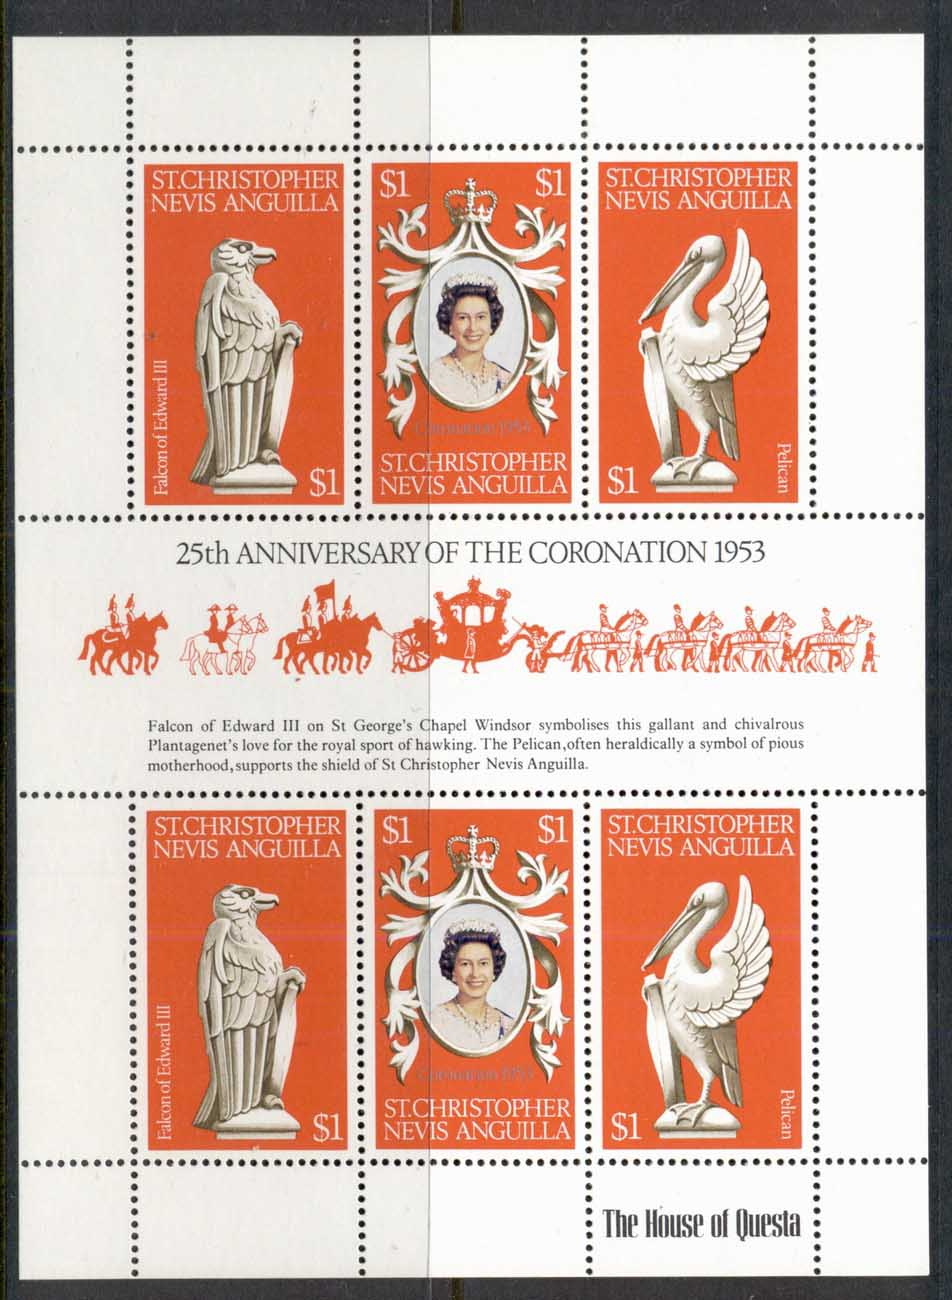 St Christopher Nevis Anguilla 1978 QEII Coronation 25th Anniv. Sheetlet MUH